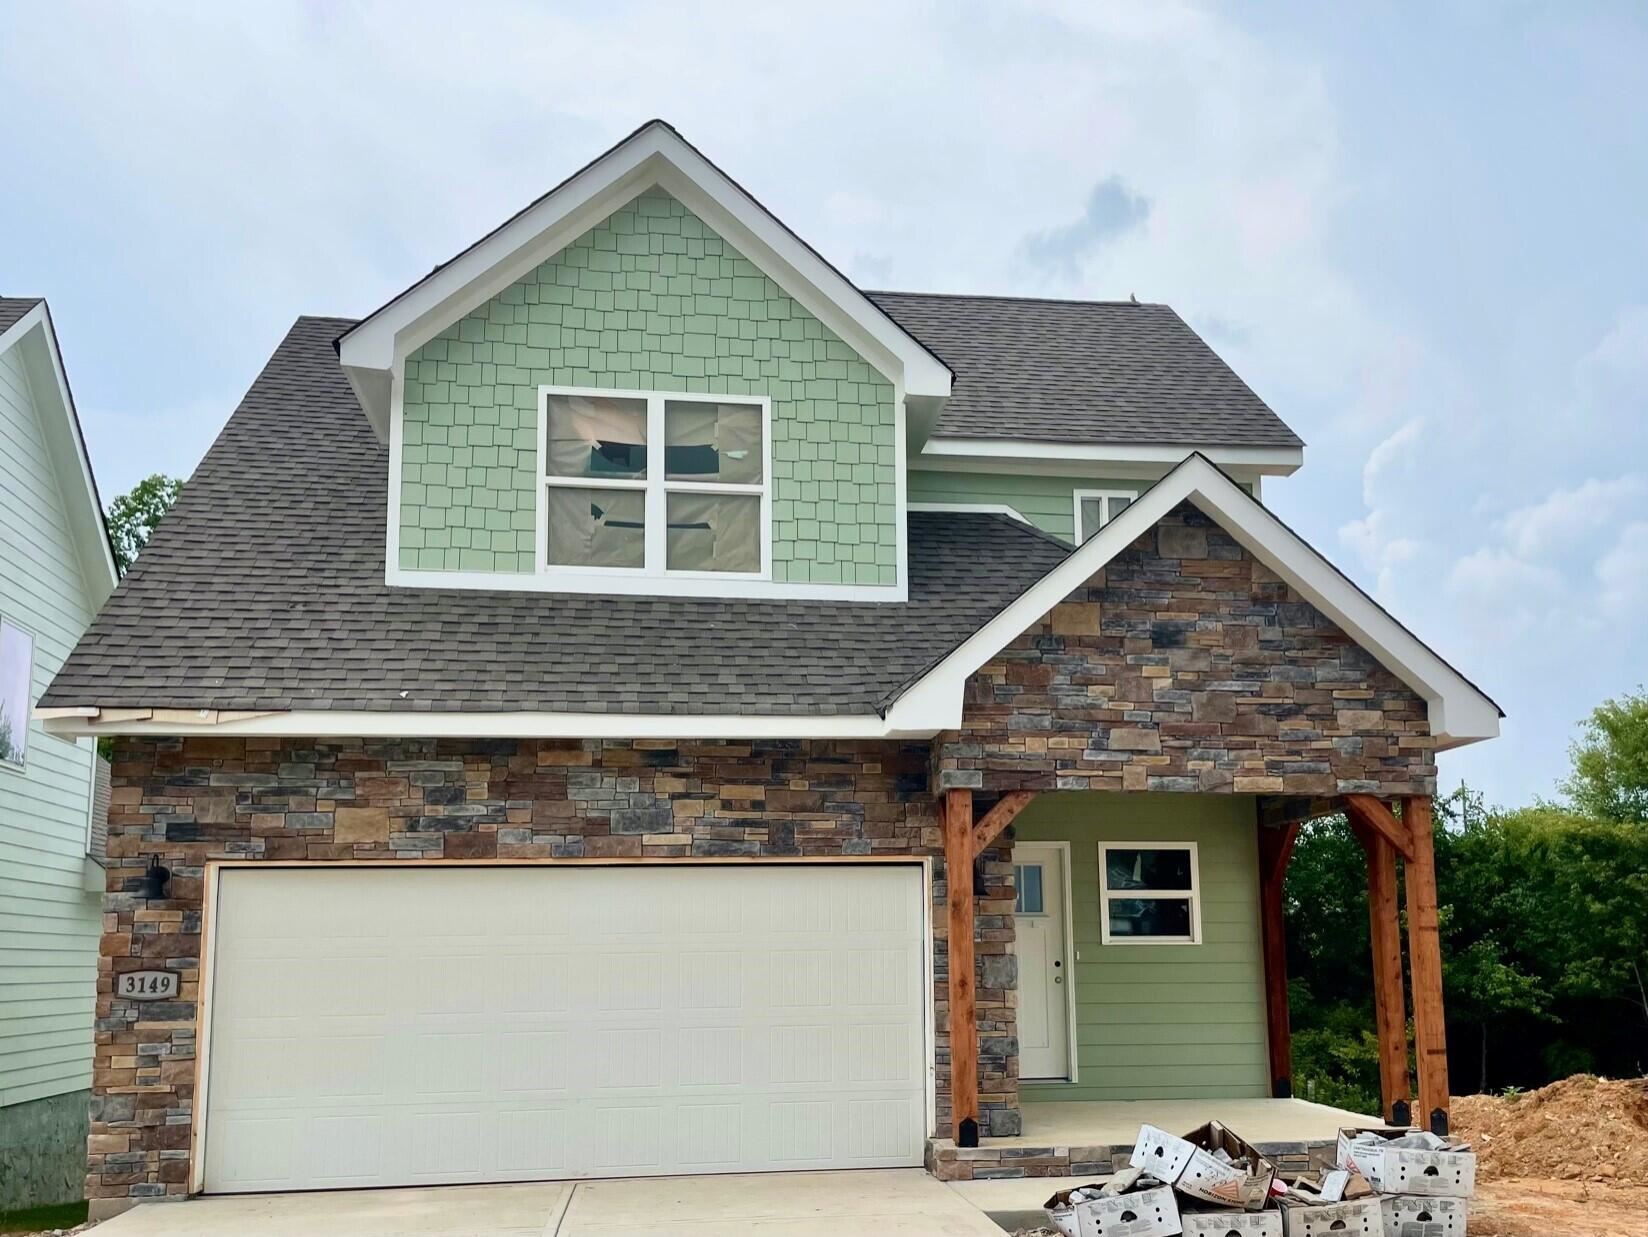 Photo of 3149 Bakertown Station Way, Knoxville, TN 37931 (MLS # 1161947)